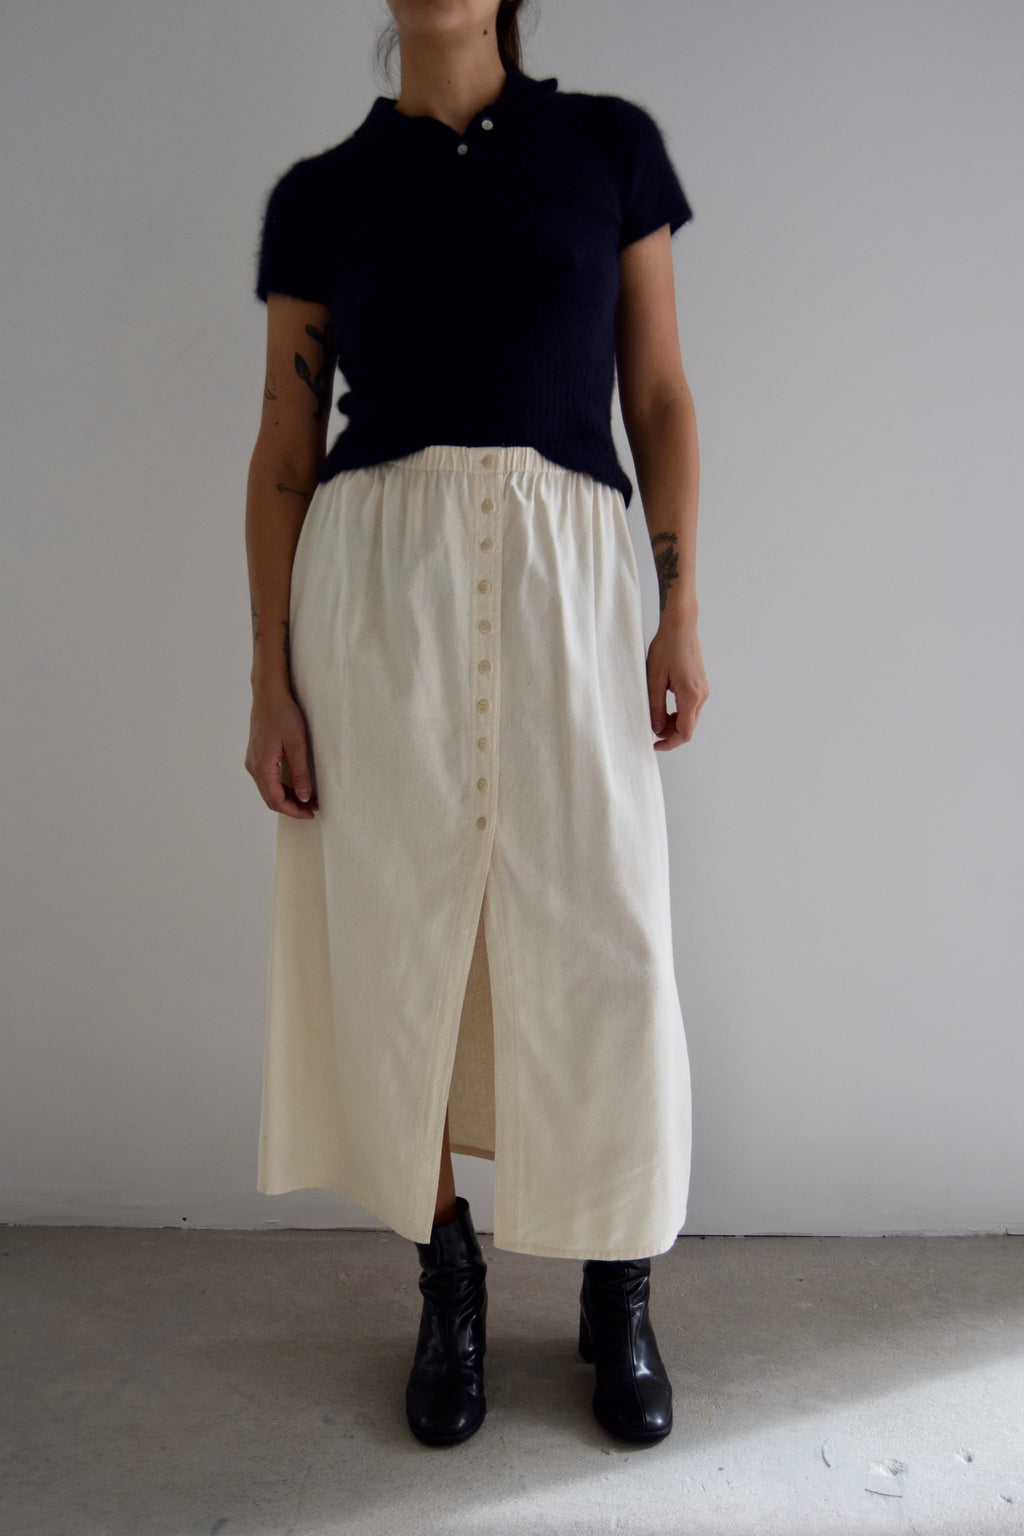 Ivory Raw Silk Button Down Skirt FREE SHIPPING TO THE U.S.